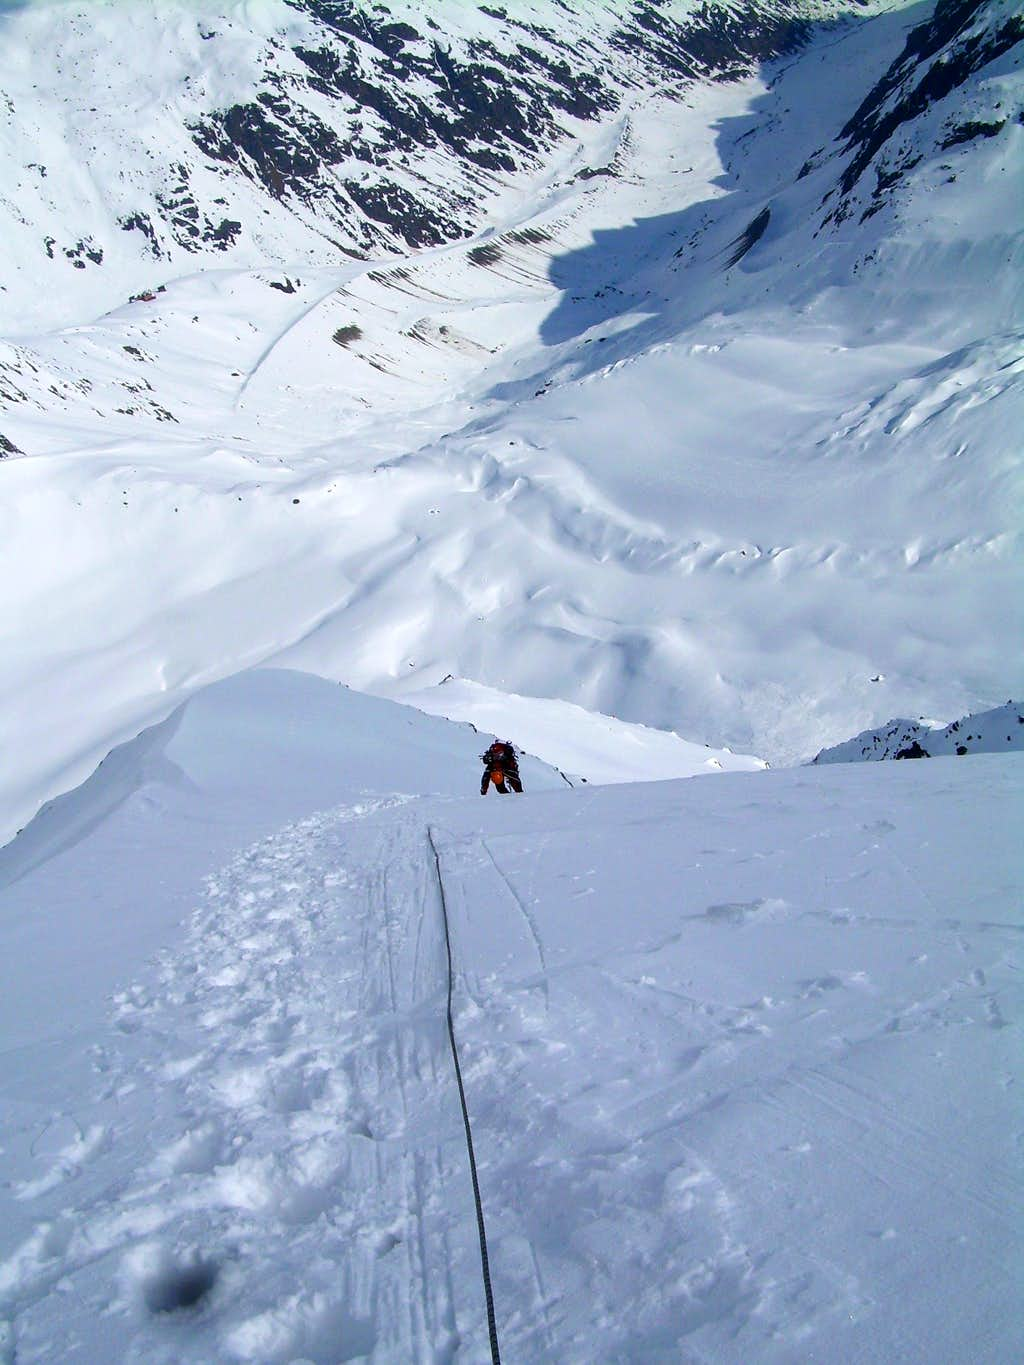 The last pitch of the Taschach North Face